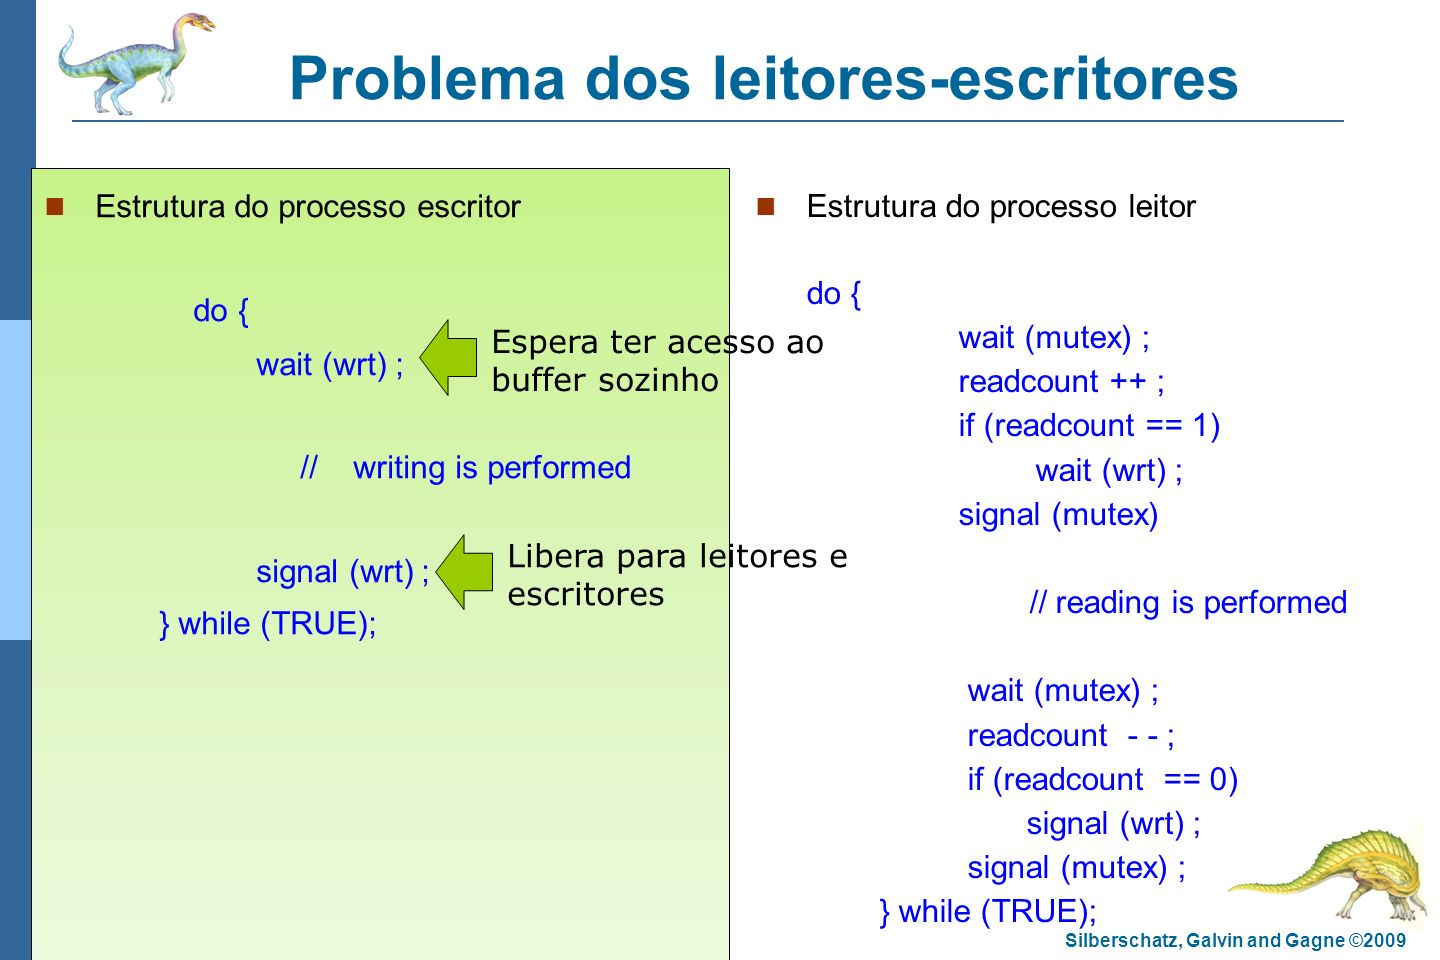 6.44 Silberschatz, Galvin and Gagne ©2009 Operating System Concepts – 8 th Edition Problema dos leitores-escritores Estrutura do processo escritor do